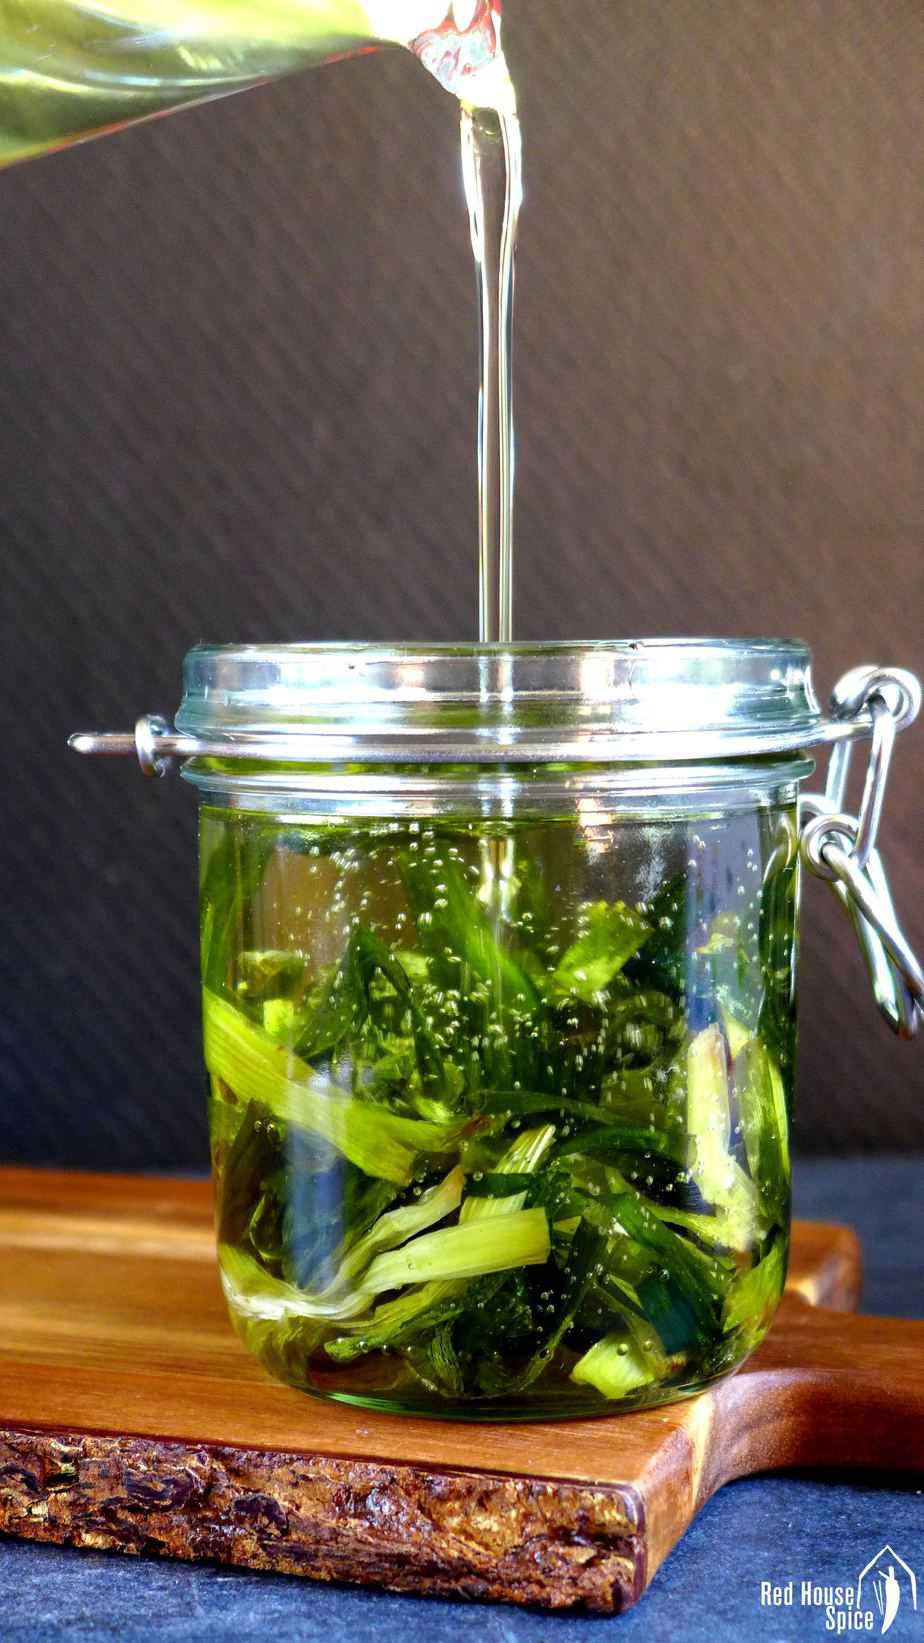 Spring onion oil pouring into a jar